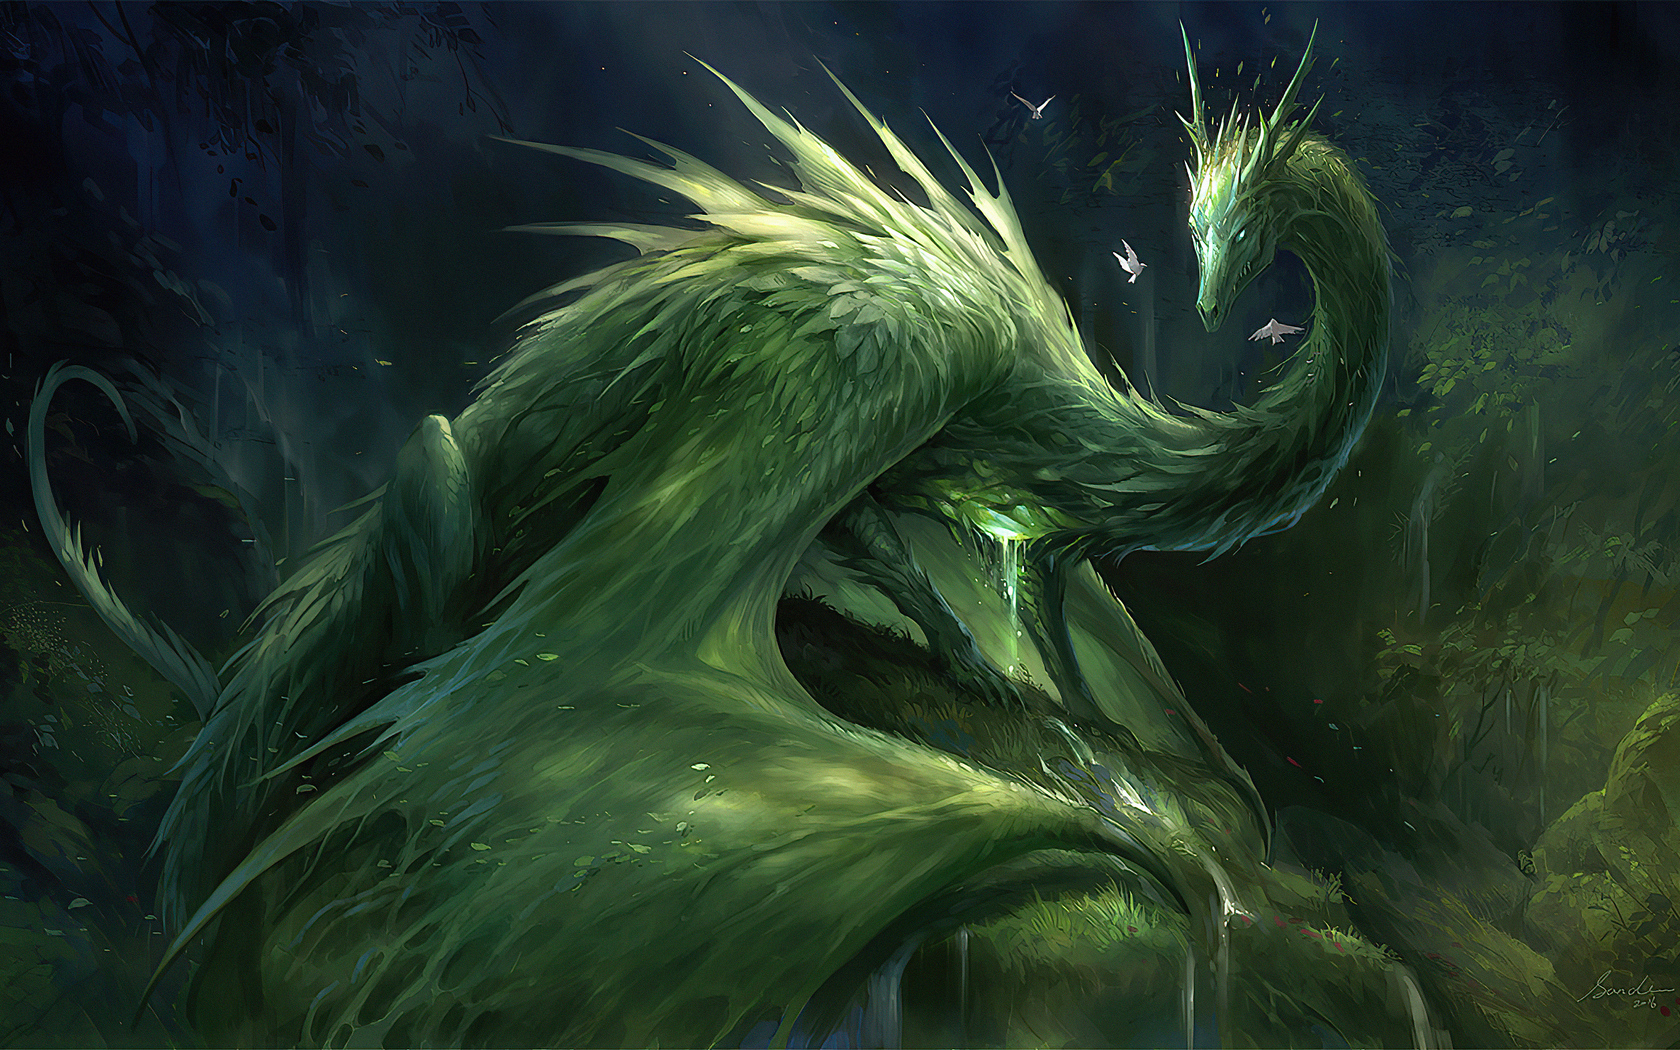 1680x1050 Green Crystal Dragon 4k 1680x1050 Resolution Hd 4k Wallpapers Images Backgrounds Photos And Pictures